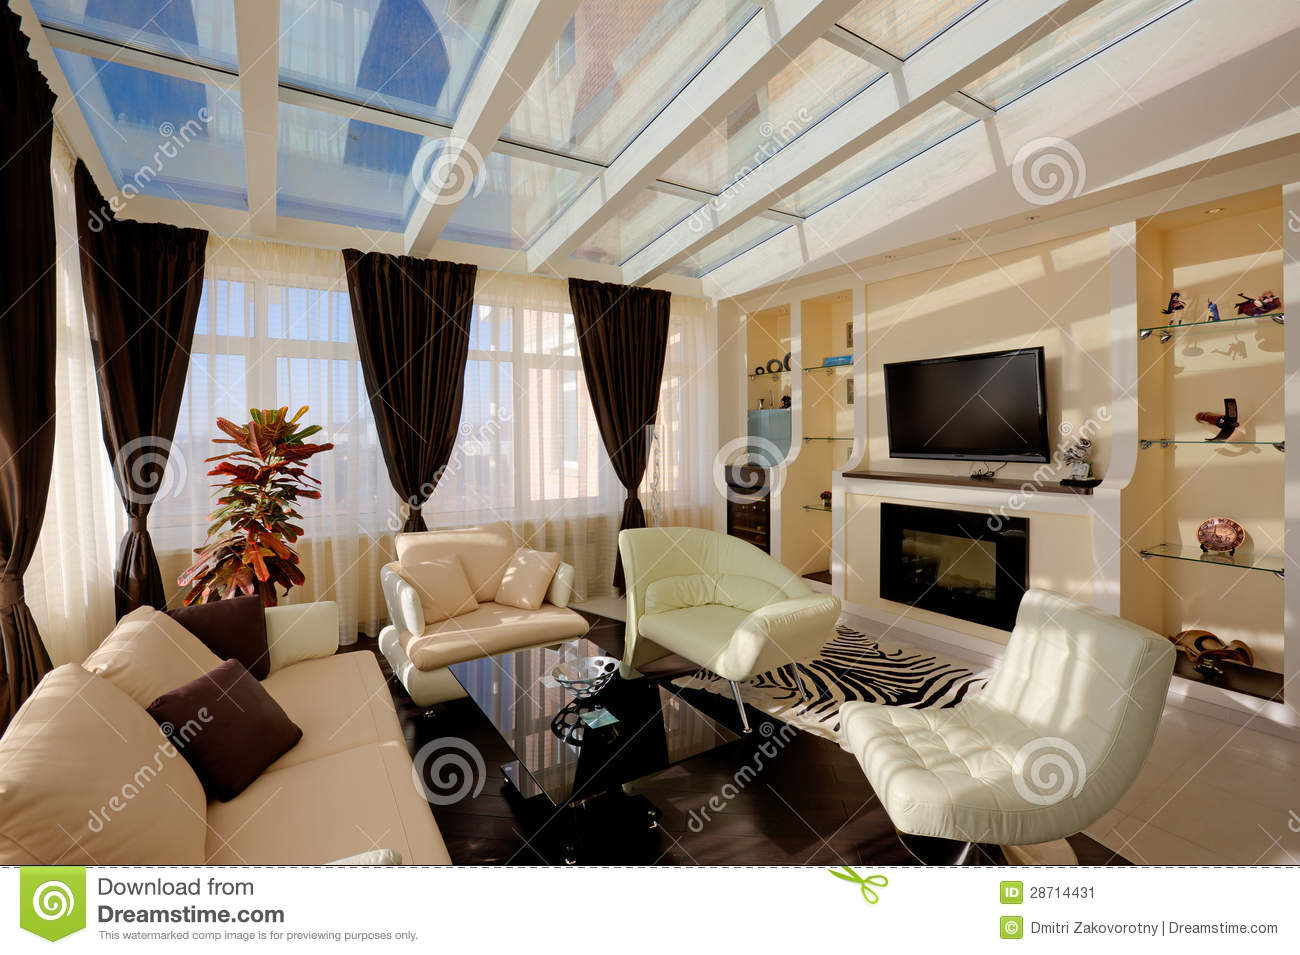 Emejing image joli salon images awesome interior home satellite for Image joli salon